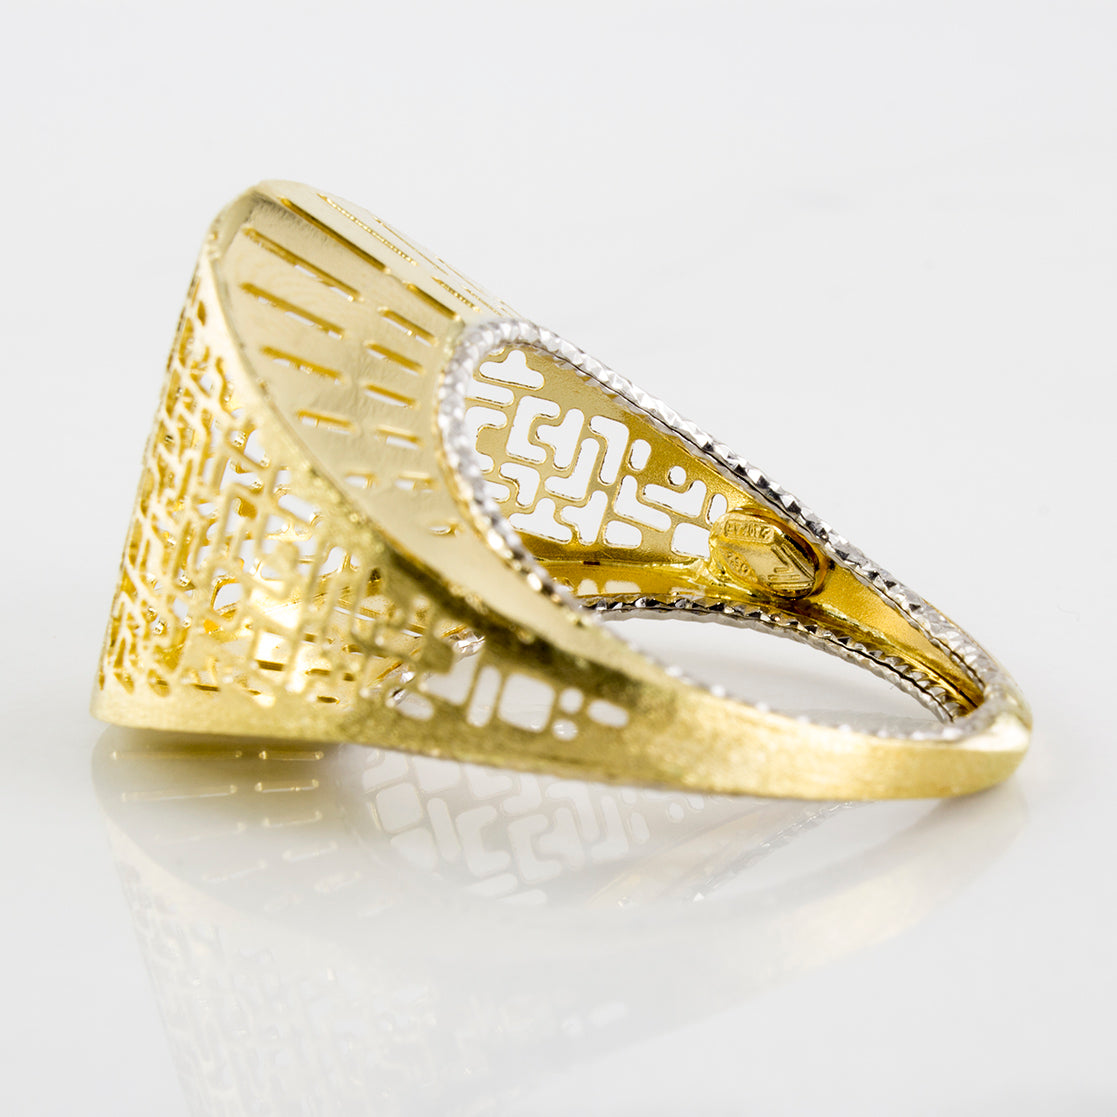 Hollow Geometric Form Two Tone Ring | SZ 8 |